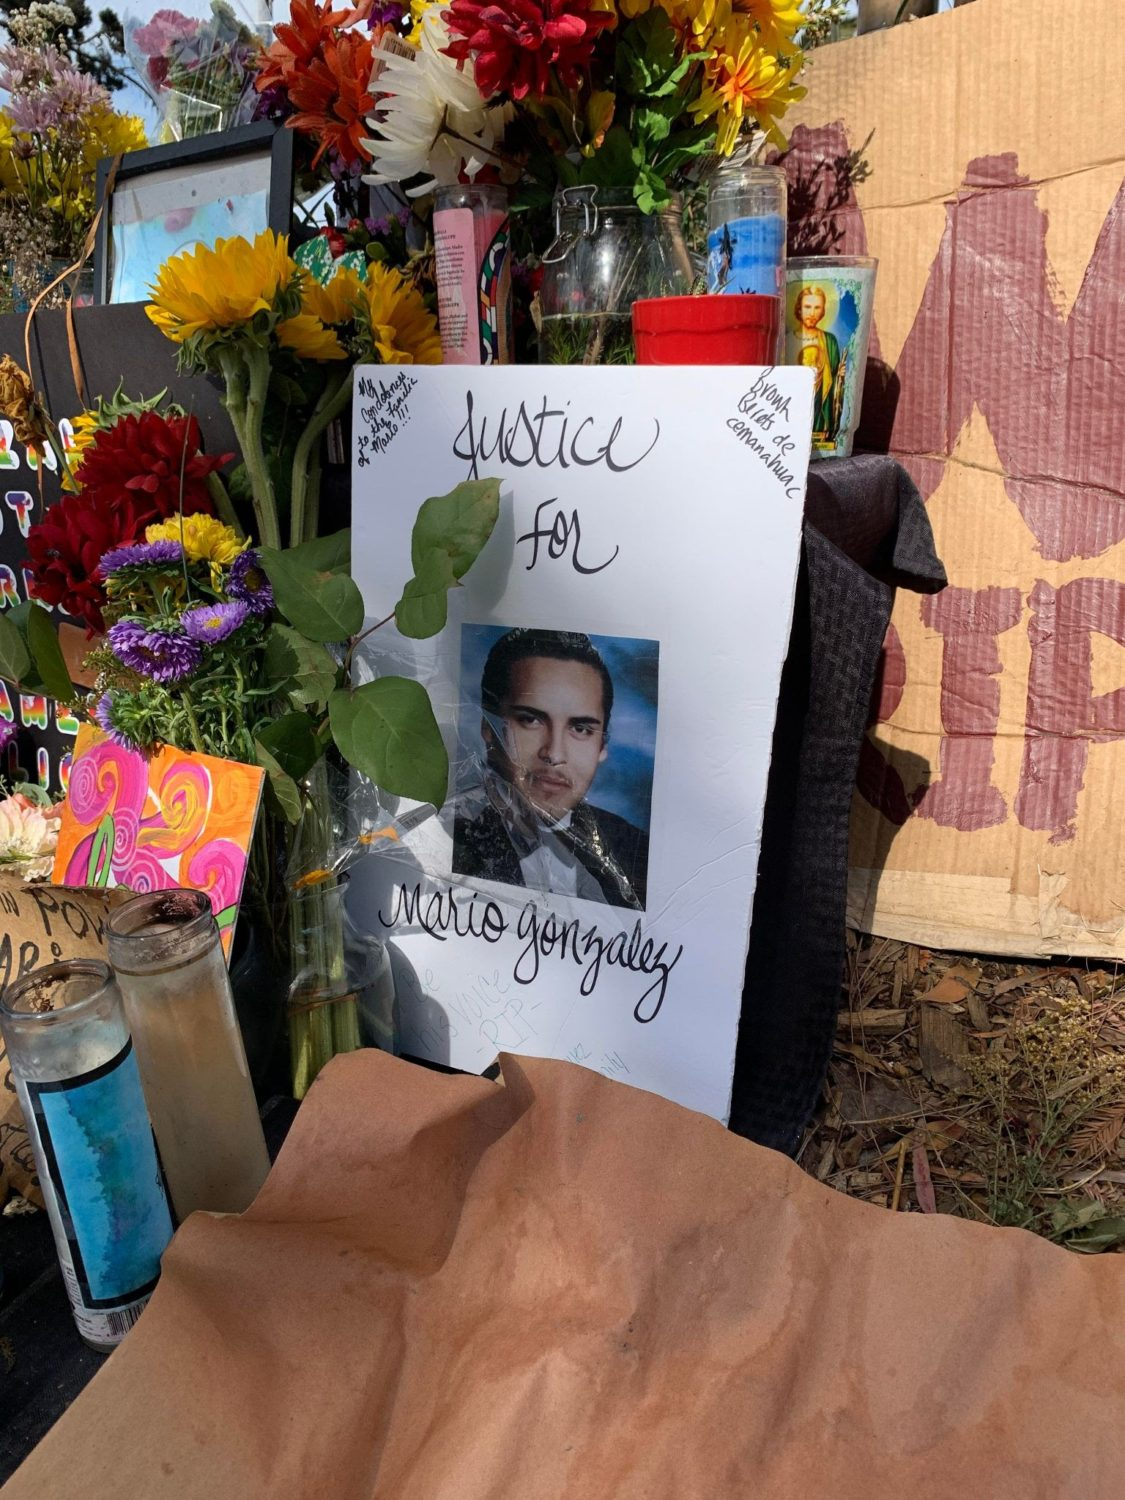 Altar-created-by-Oakland-Brown-Berets-Tele-Jaguar-for-Mario-Gonzales-murdered-by-Alameda-PD-041921-by-Poor, From poverty tows to Palestine: The violence of settler colonial evictions across Mama Earth, World News & Views